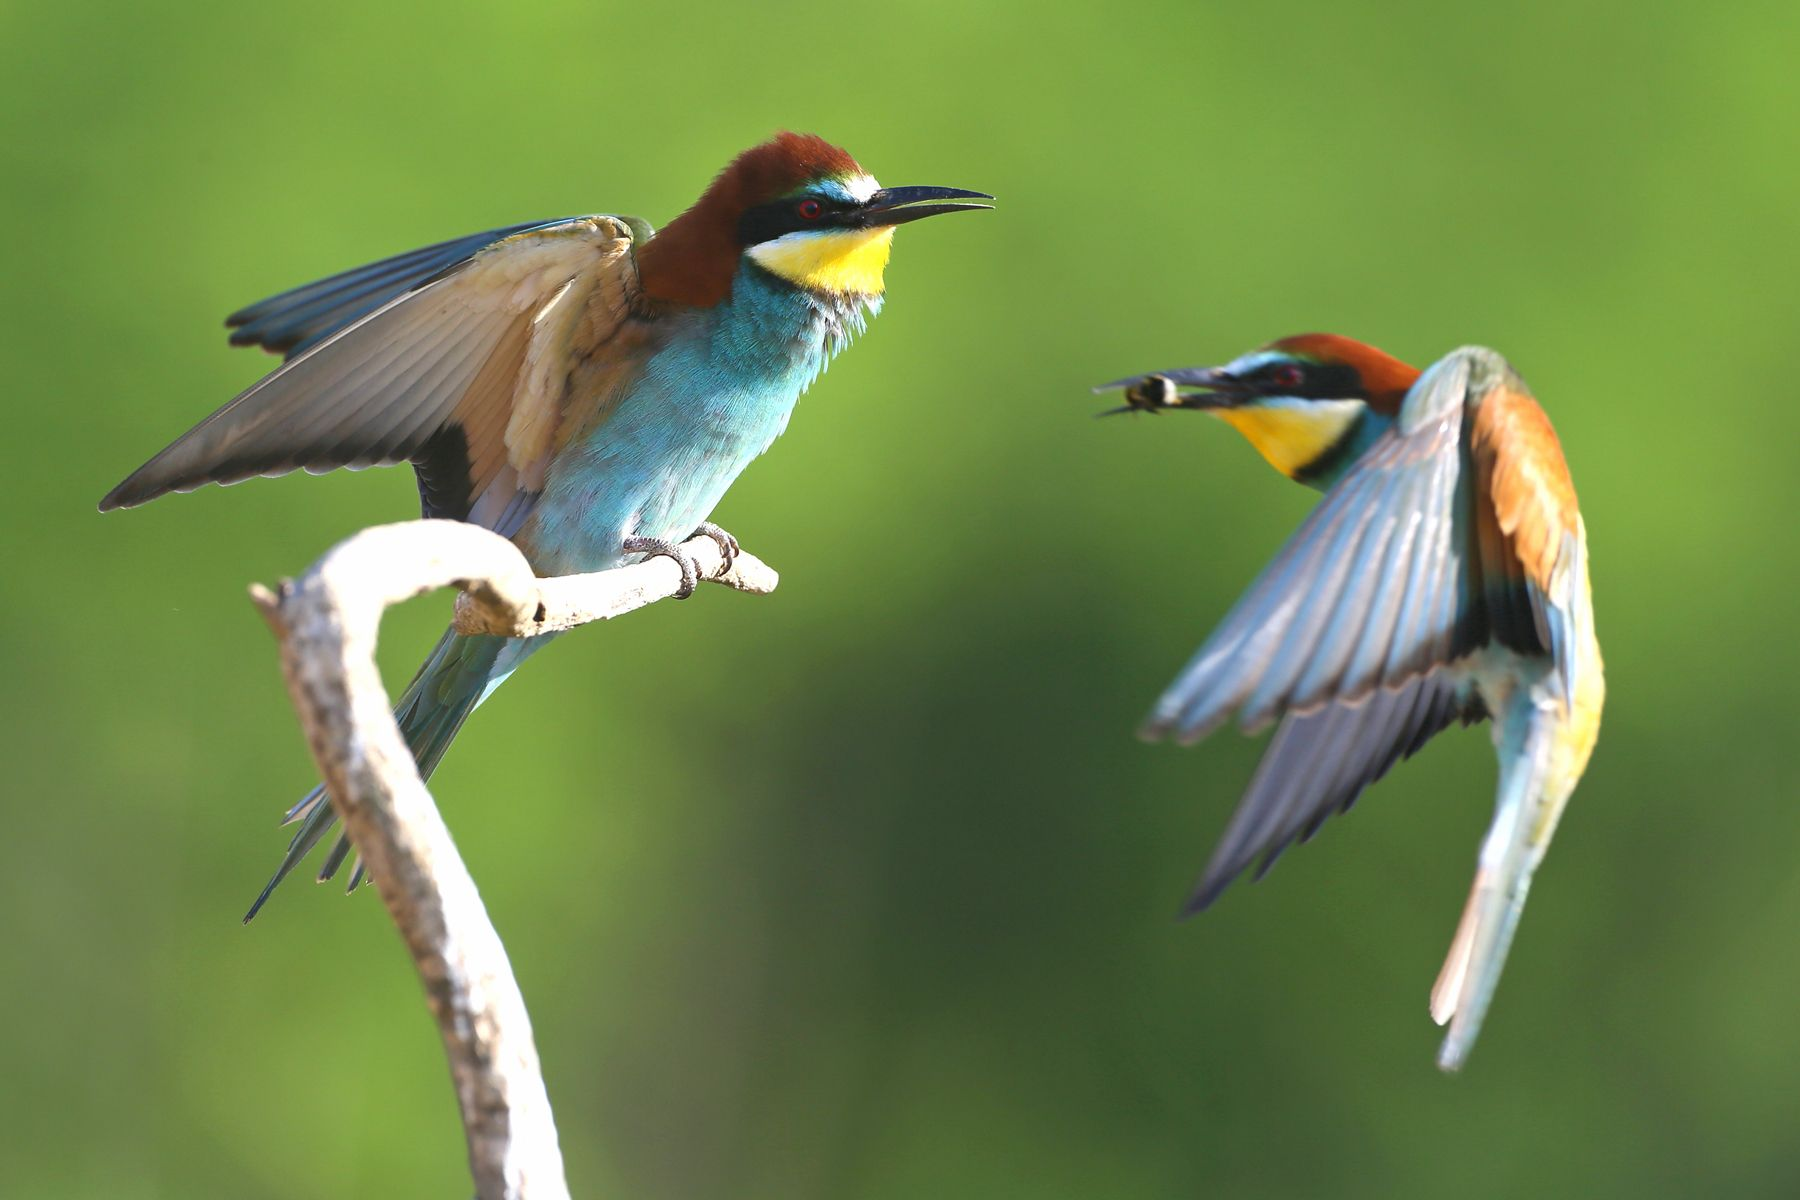 European Bee-eaters can be photographed in Hungary just metres away